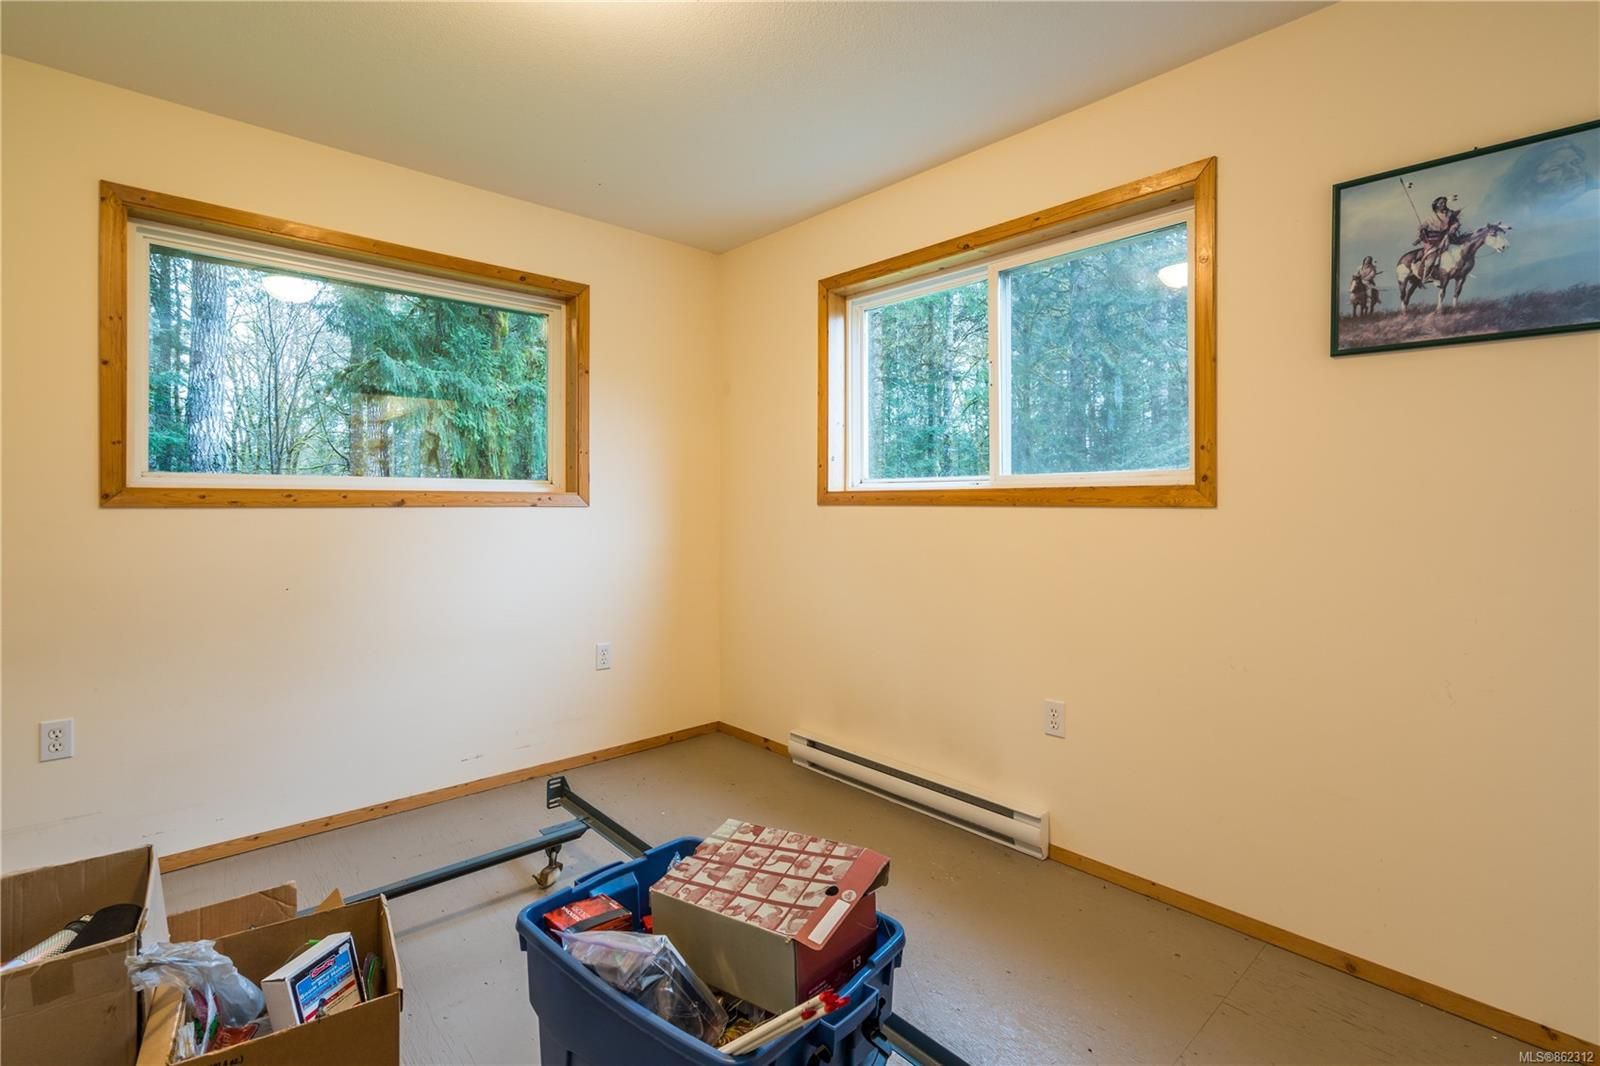 Photo 44: Photos: 7380 Plymouth Rd in : PA Alberni Valley House for sale (Port Alberni)  : MLS®# 862312